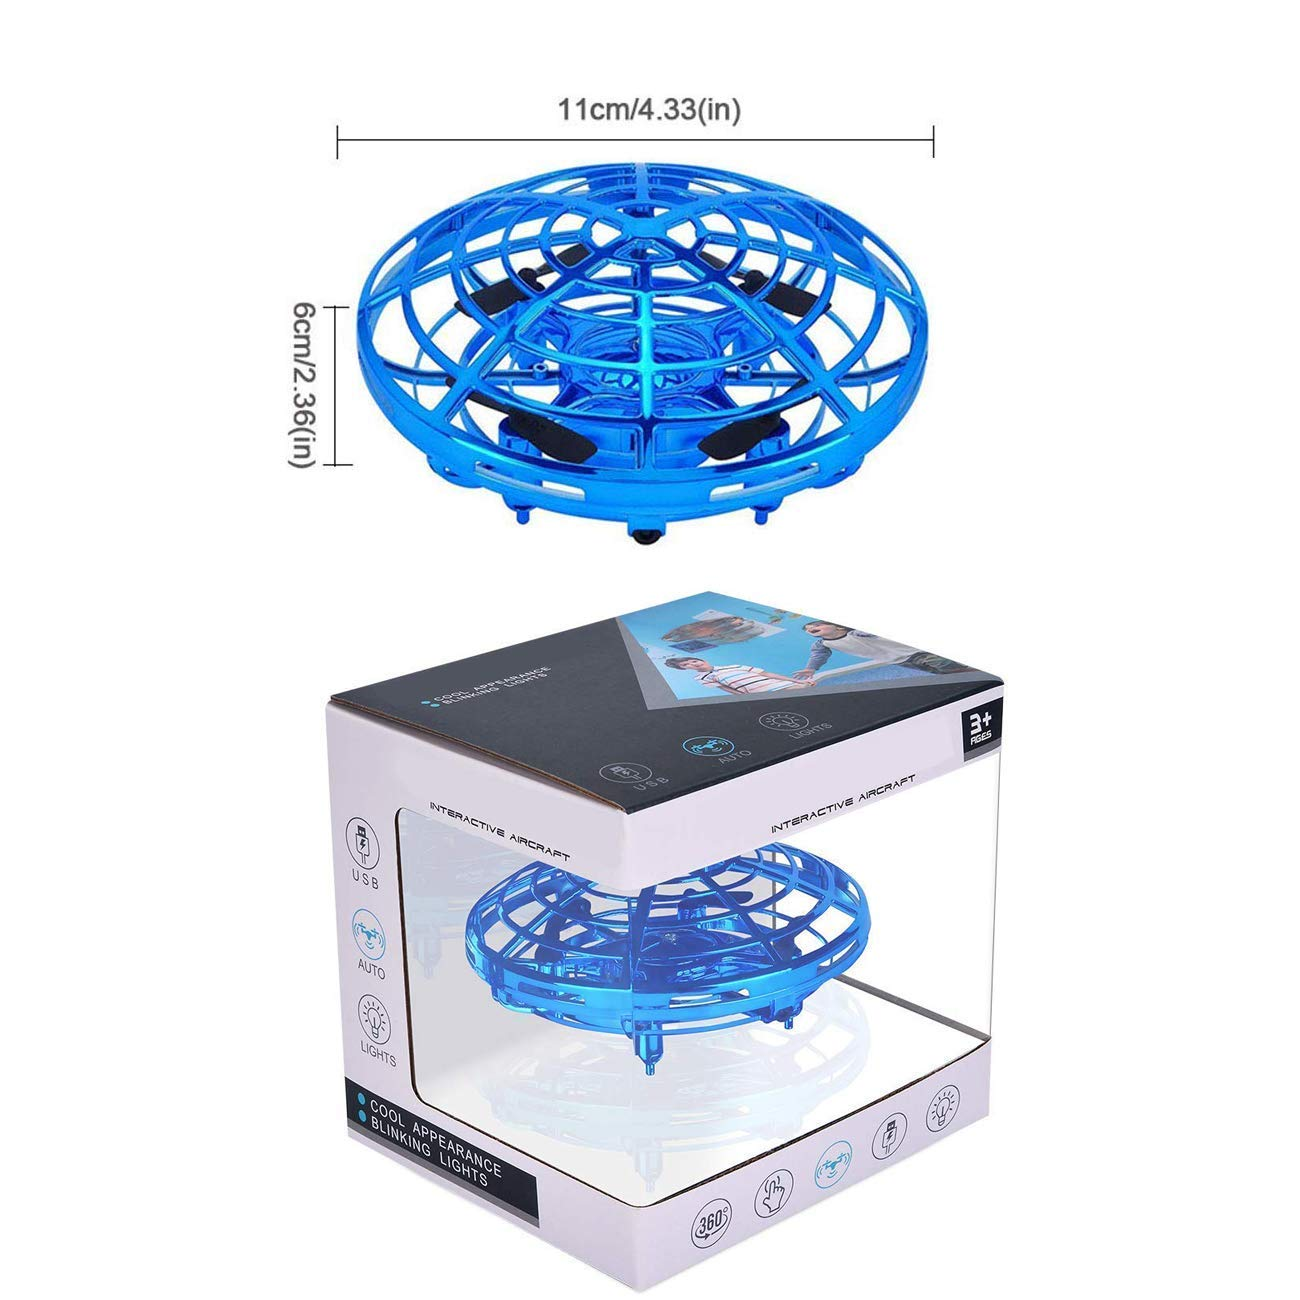 Hand-Controlled Drone Quadcopter Flying Toys Interactive Infrared Induction Helicopter Ball with 360/°Rotating and Flashing LED Lights for Boys and Girls Kids Gifts VENAS Flying Ball Toy Drones